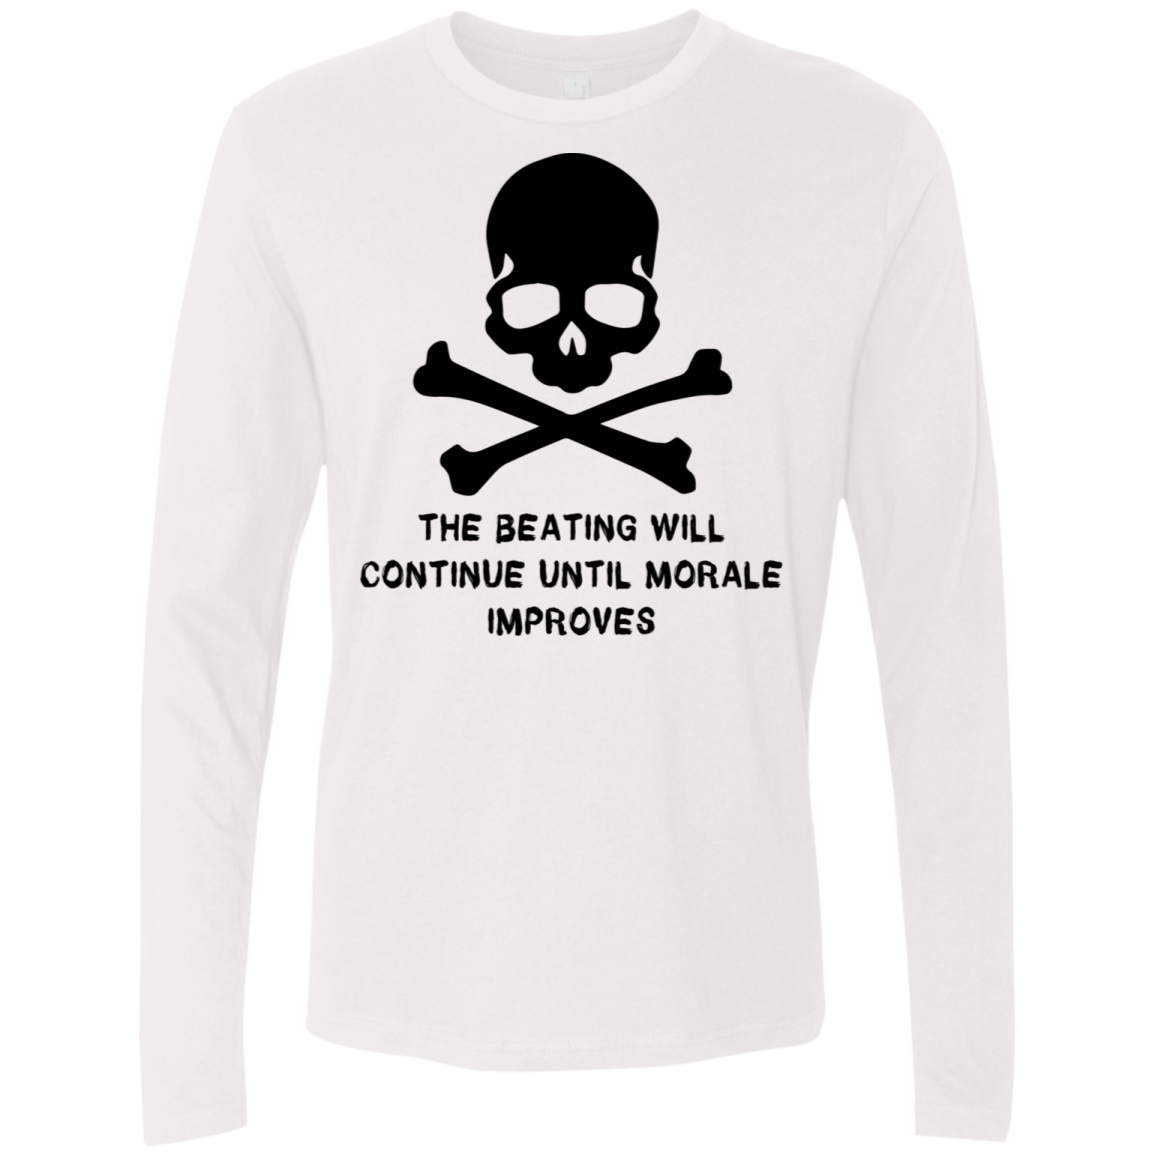 The Beating Will Continue Ultil The Morale Improves Men's Long Sleeve Tee